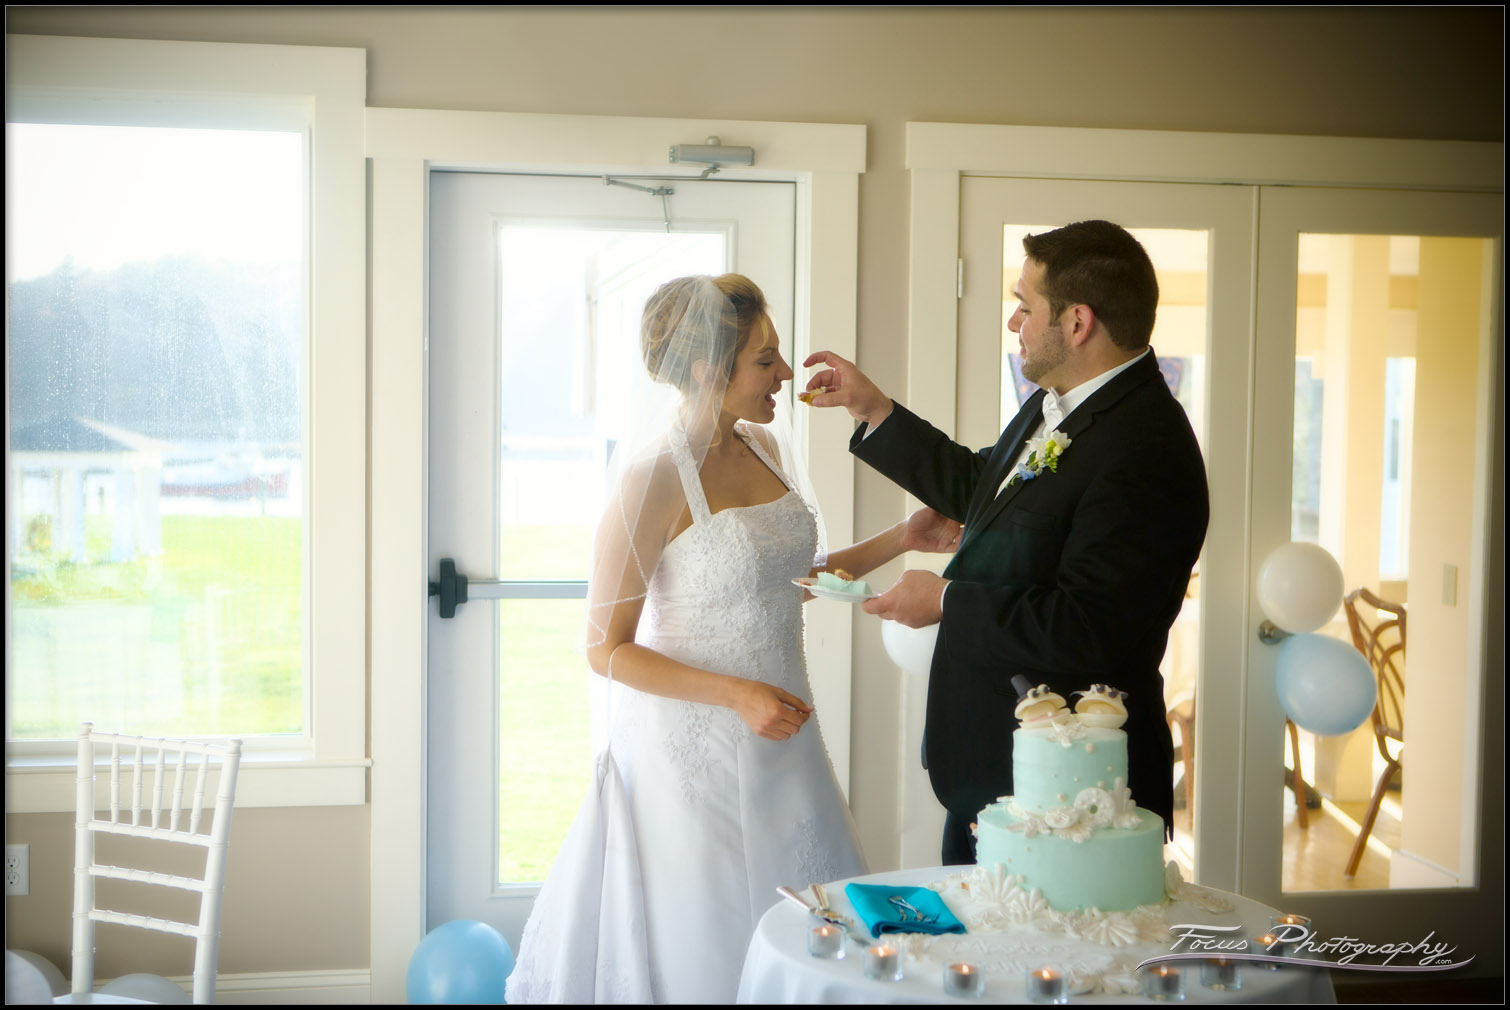 The groom feeds the bride during cake cutting at Nonantum resort